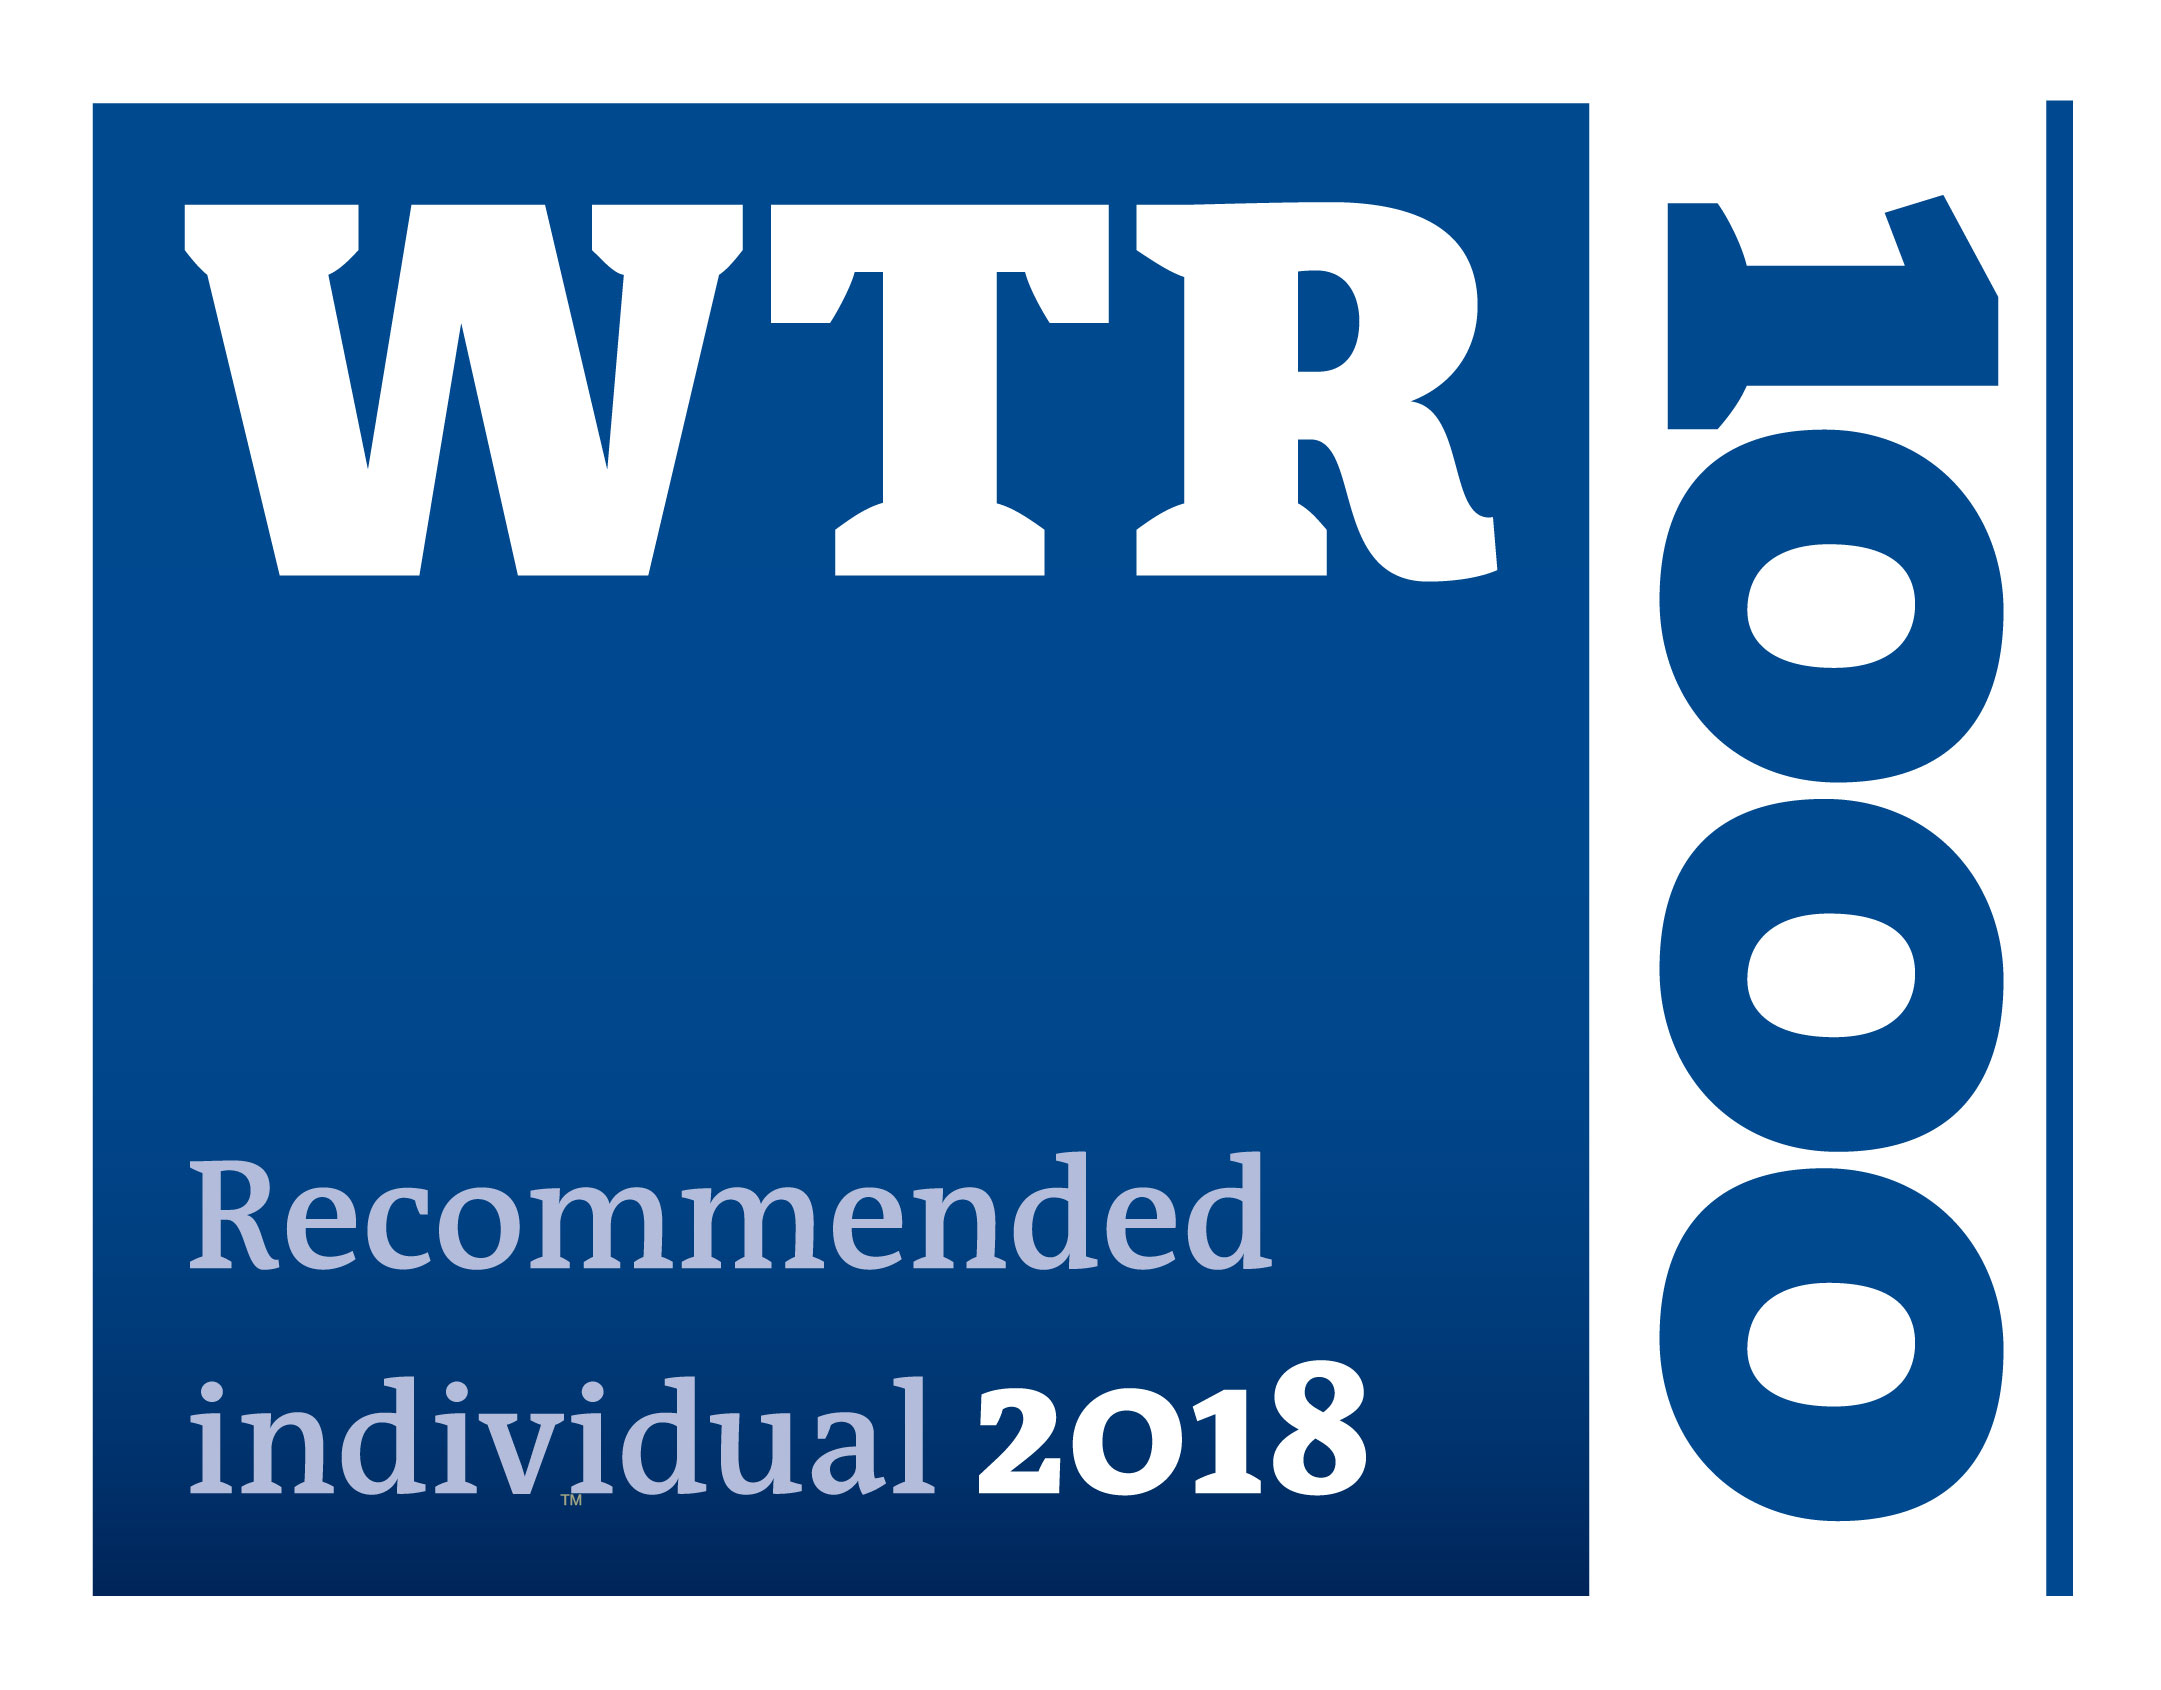 WTR 1000 2018 Clemens Pfitzer recommended individual